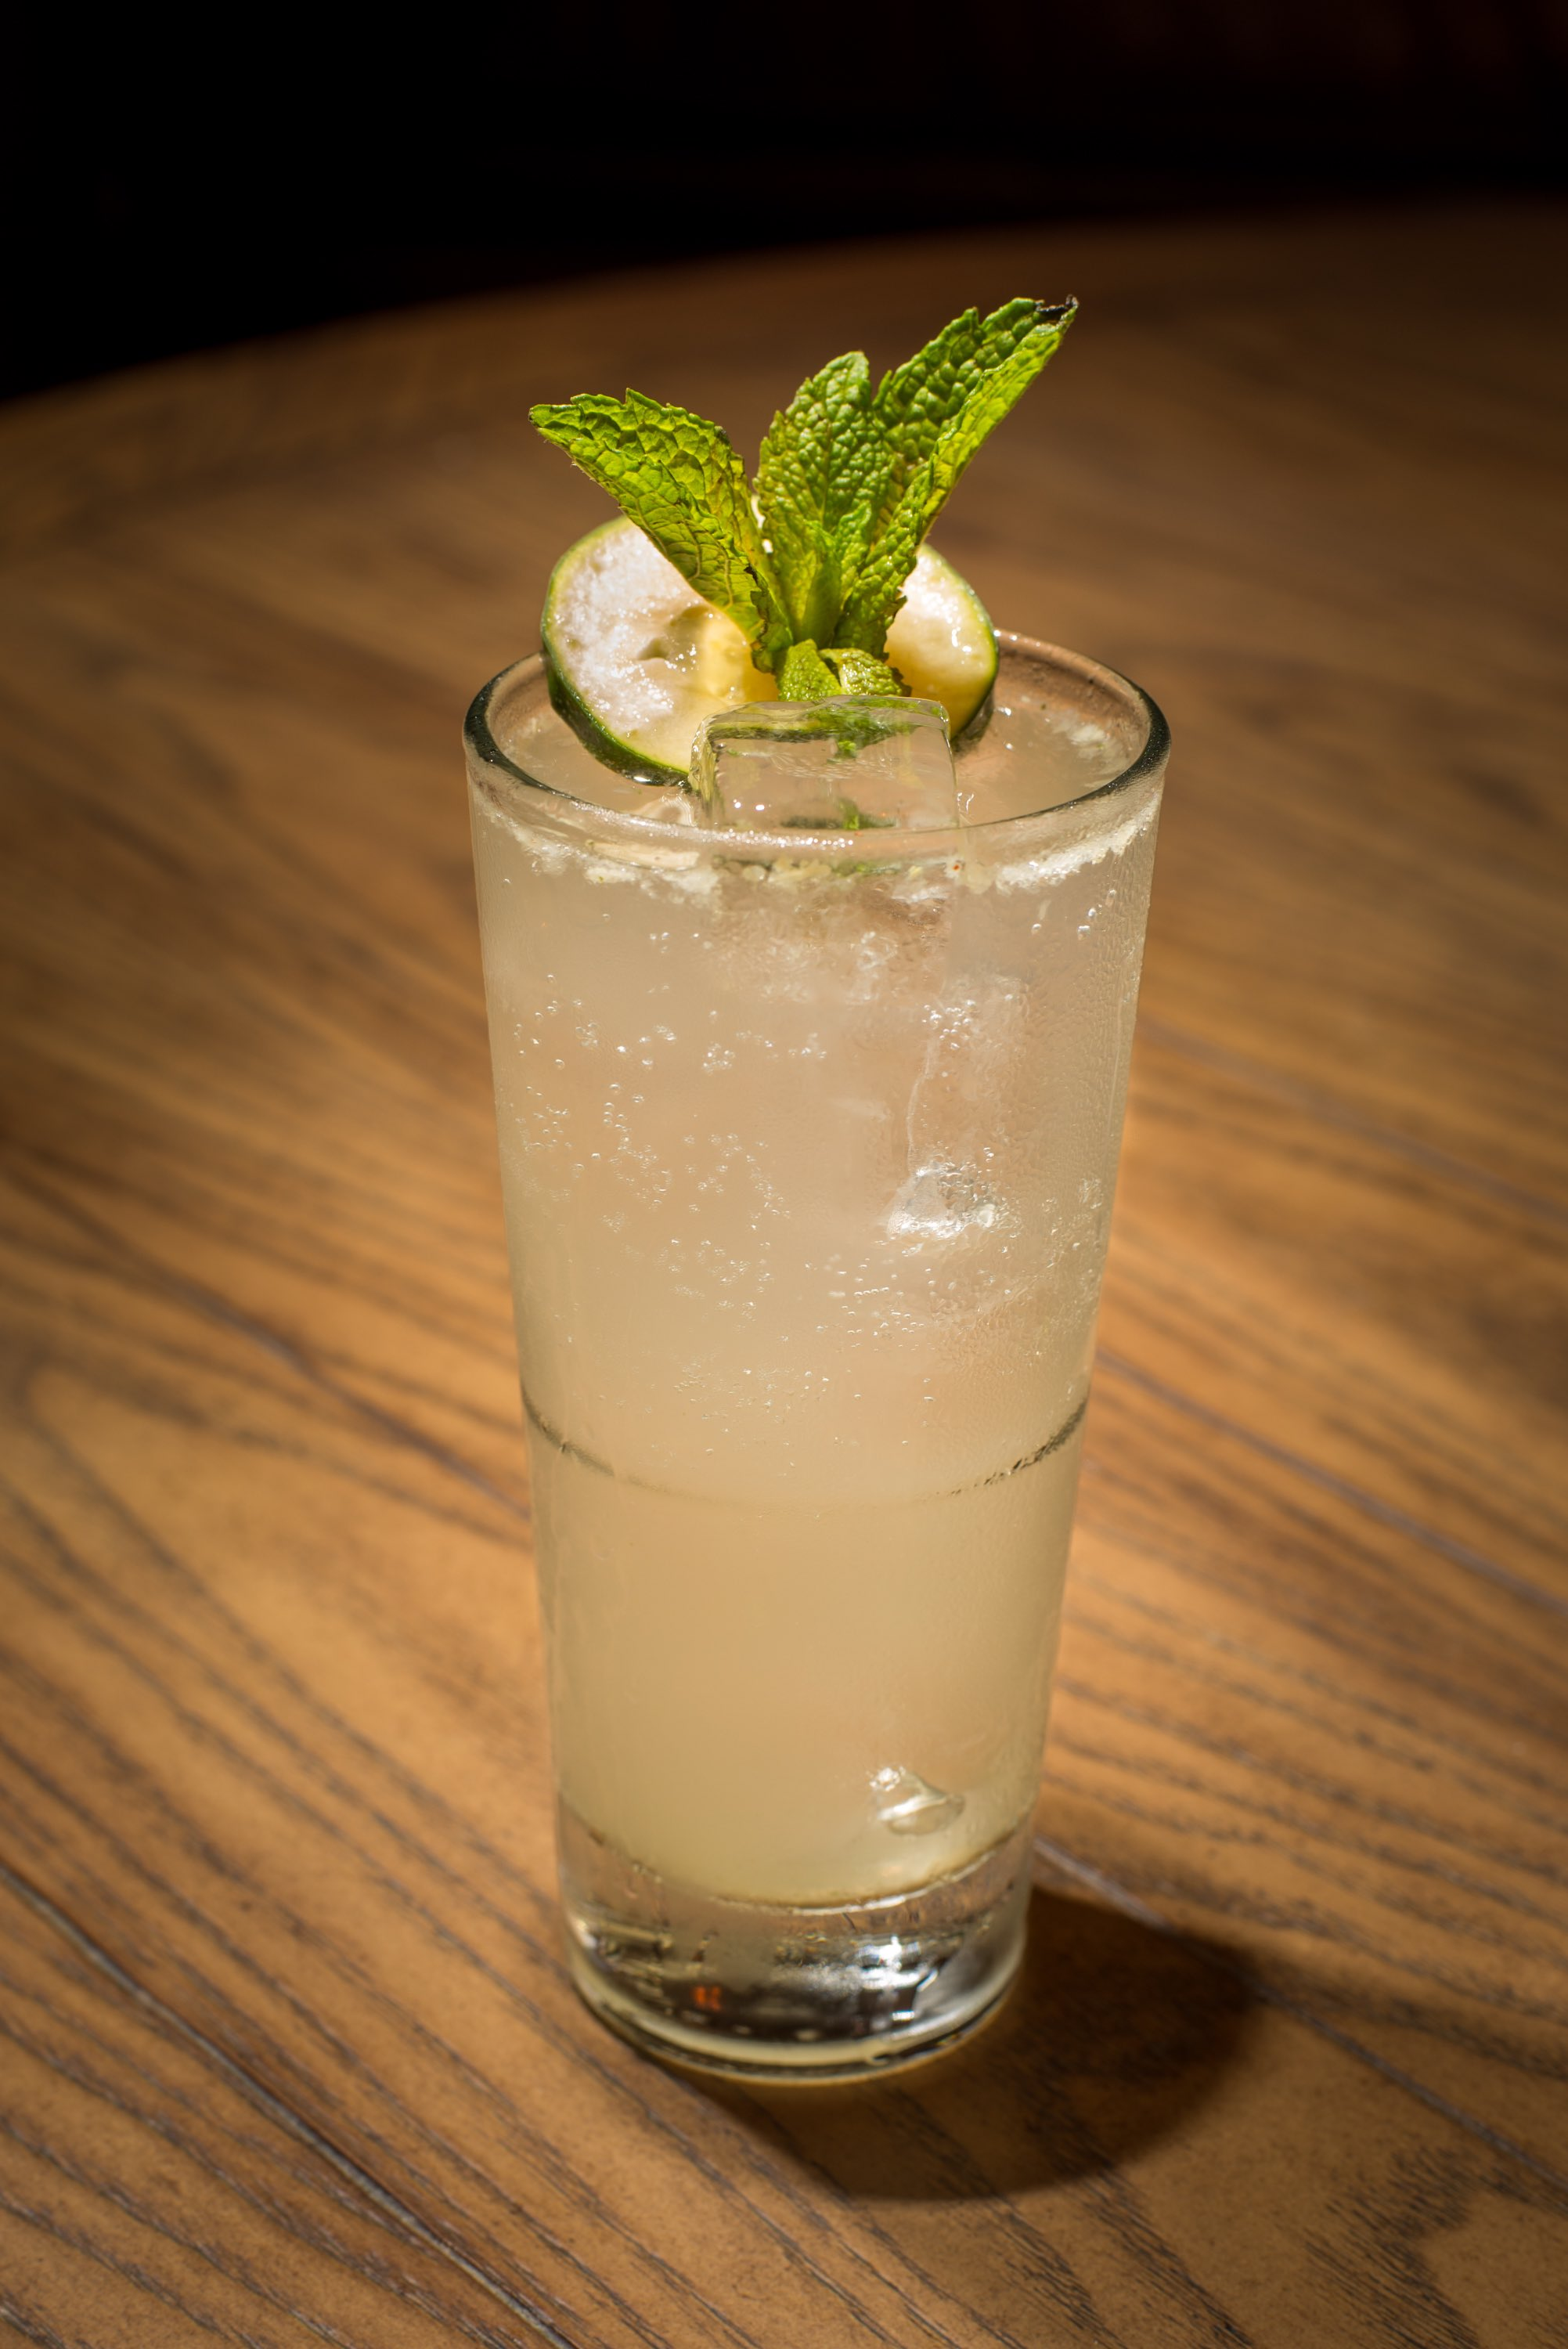 Jezebel Bar + Kitchen/Cucumber Mint Collins/Photo Credit: Jezebel Bar + Kitchen